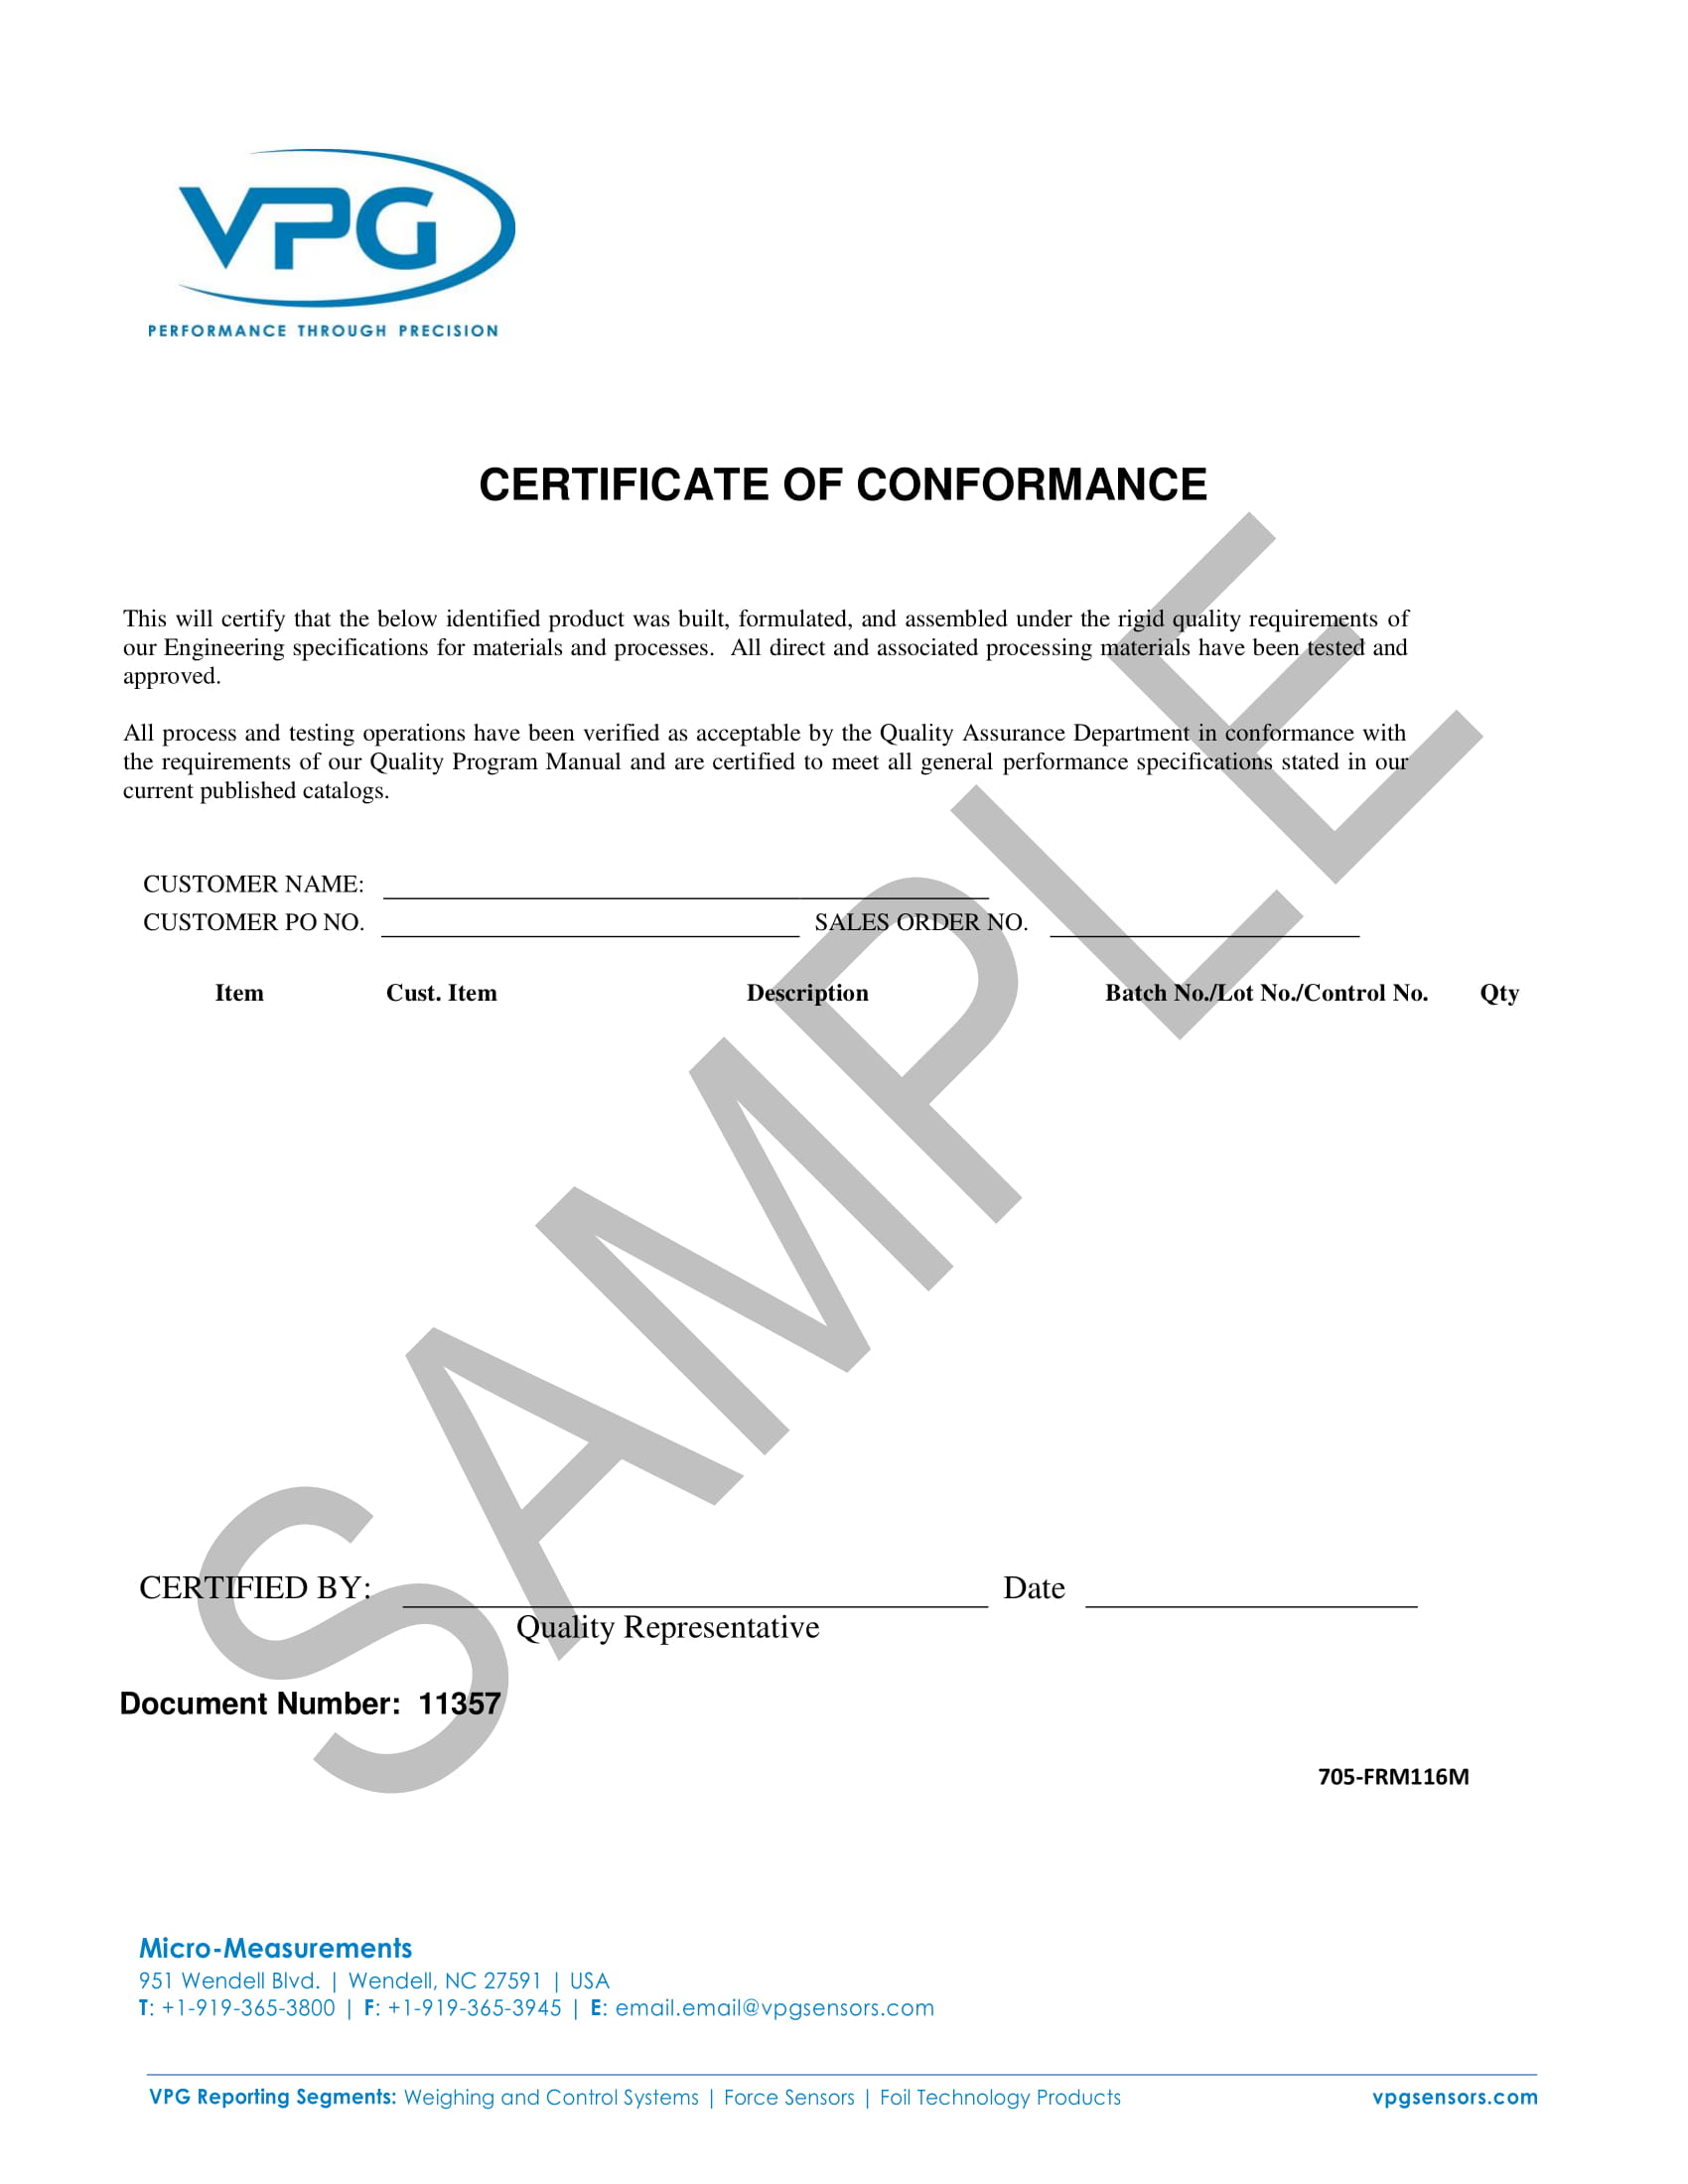 Short-Certificate-of-Conformance-Template-Example Quality Of Conformance Example on printable certificate, kintana non, generic certificate, aircraft certificate, manufacturer certificate, matrix template api,